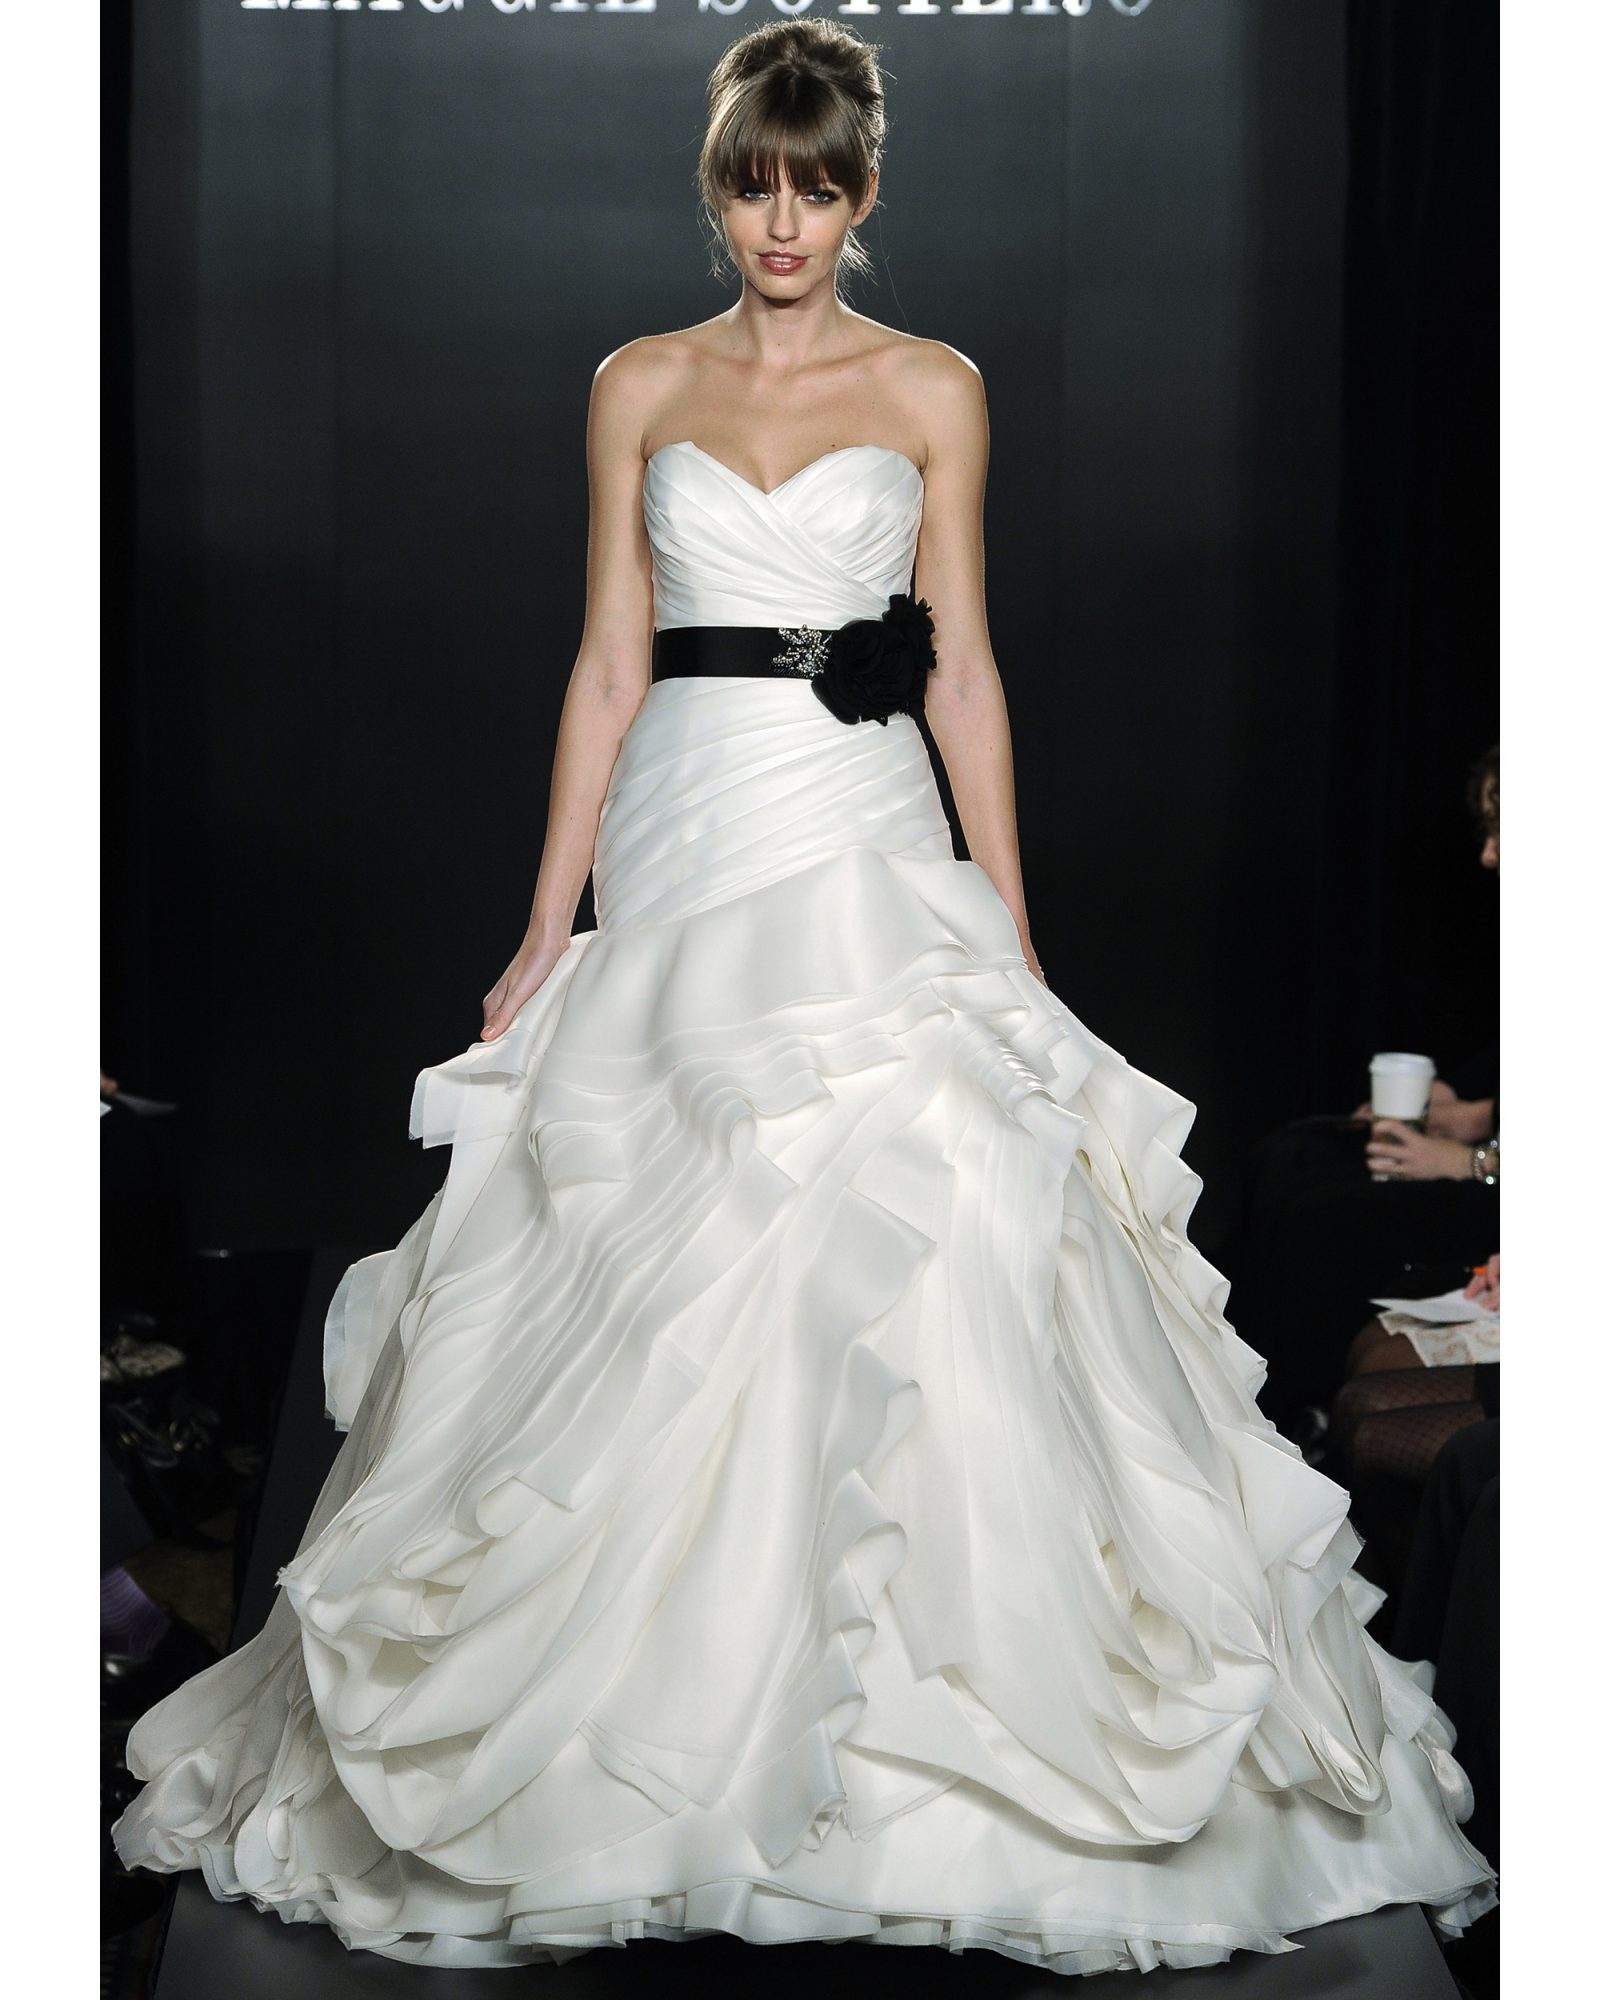 maggie-sottero-fall2012-wd108109_038.jpg